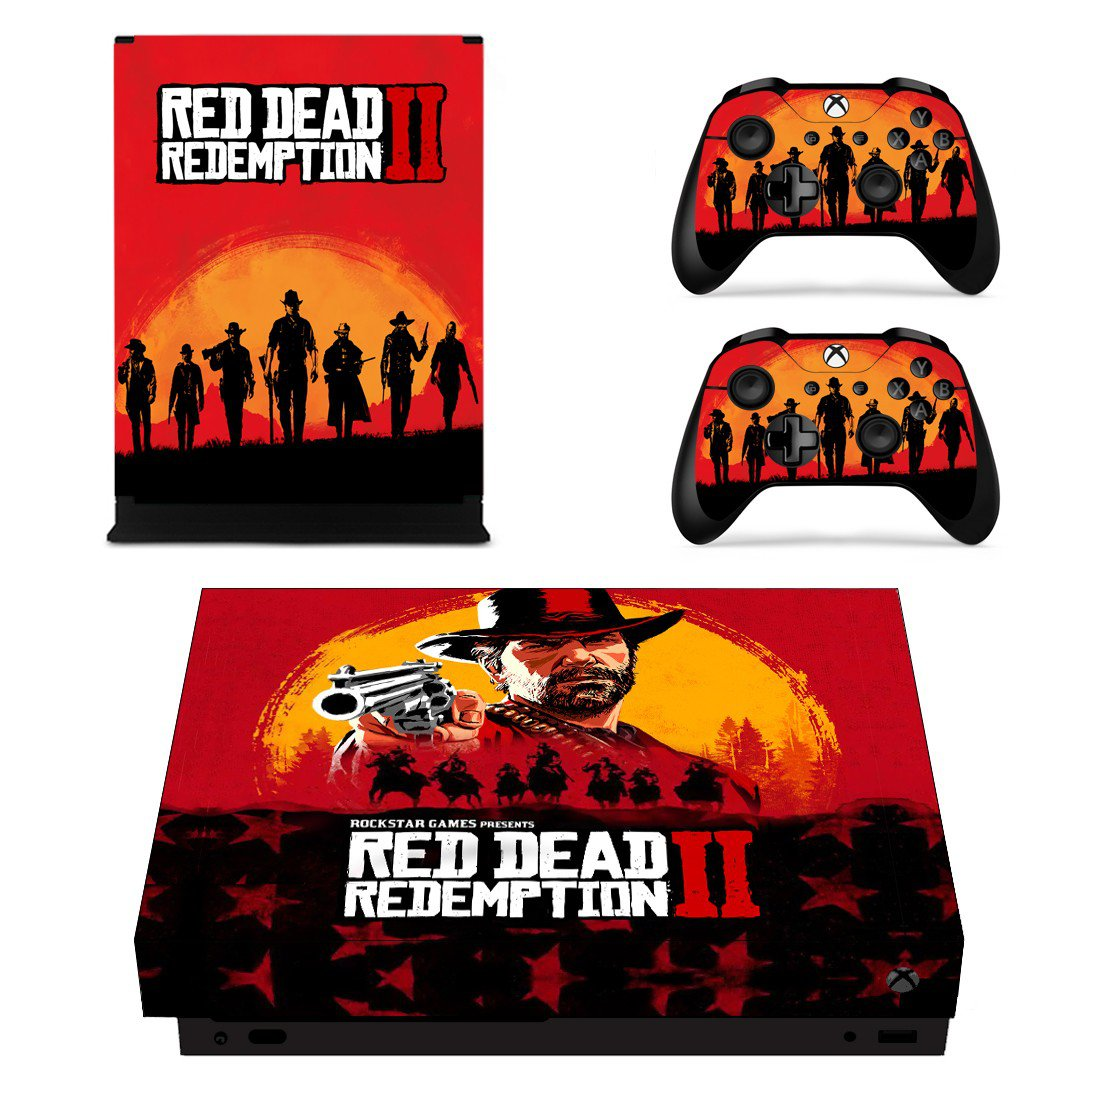 Red Dead Redemption 2 decal skin sticker for Xbox One X console and controllers